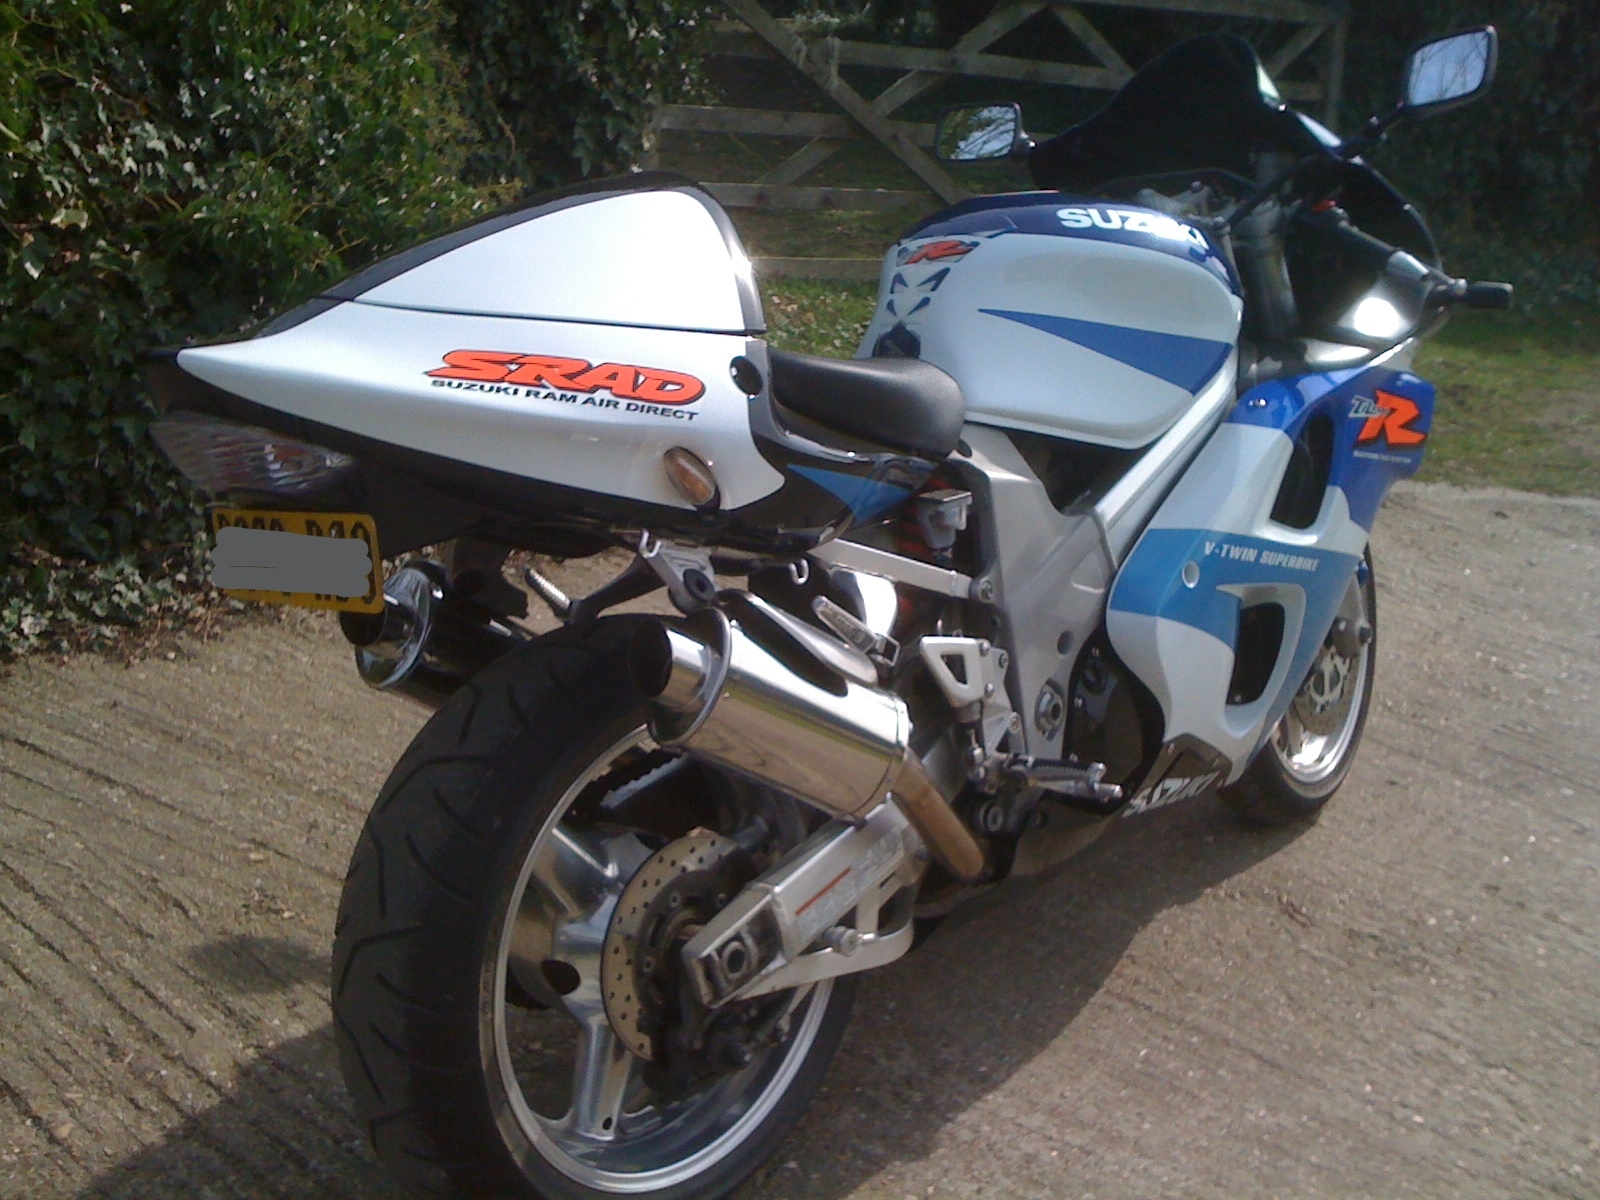 """Suzuki TL1000 <p>A16 Stubby Stainless Exhaust with Slashcut Outlets</p><br/><a href=""""https://a16roadnracesupplies.co.uk/product/a16-suzuki-exhausts/"""">Buy now!</a>"""